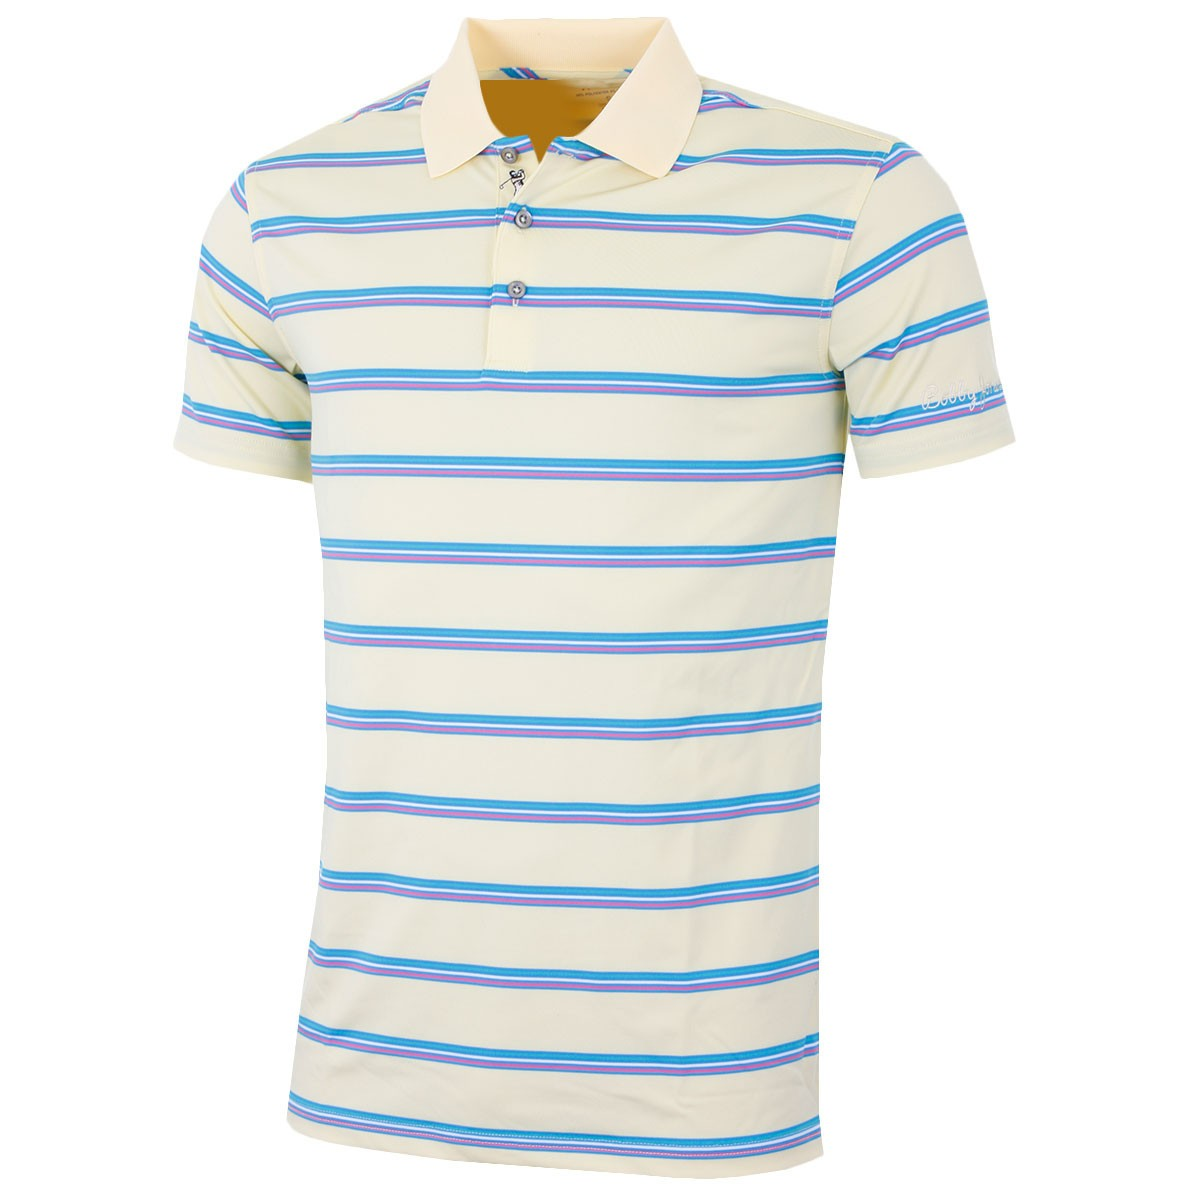 4f4cf634 Bobby Jones Mens XH20 Multi Pencil Stripe TF Golf Polo Shirt - Bobby ...